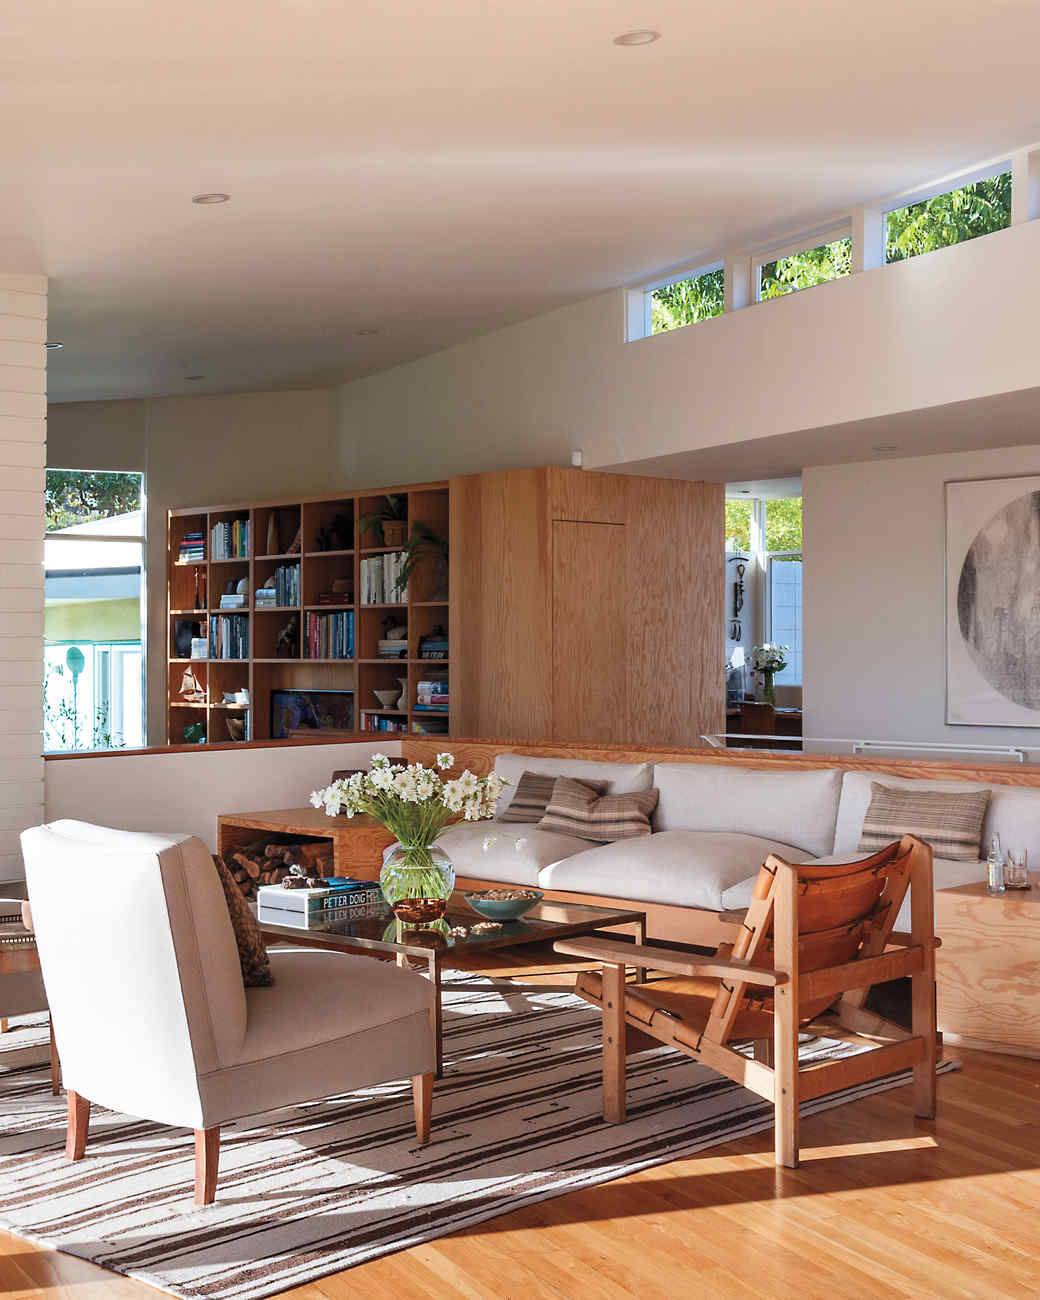 Home Tour: A Midcentury-Modern House in Los Angeles | Martha Stewart